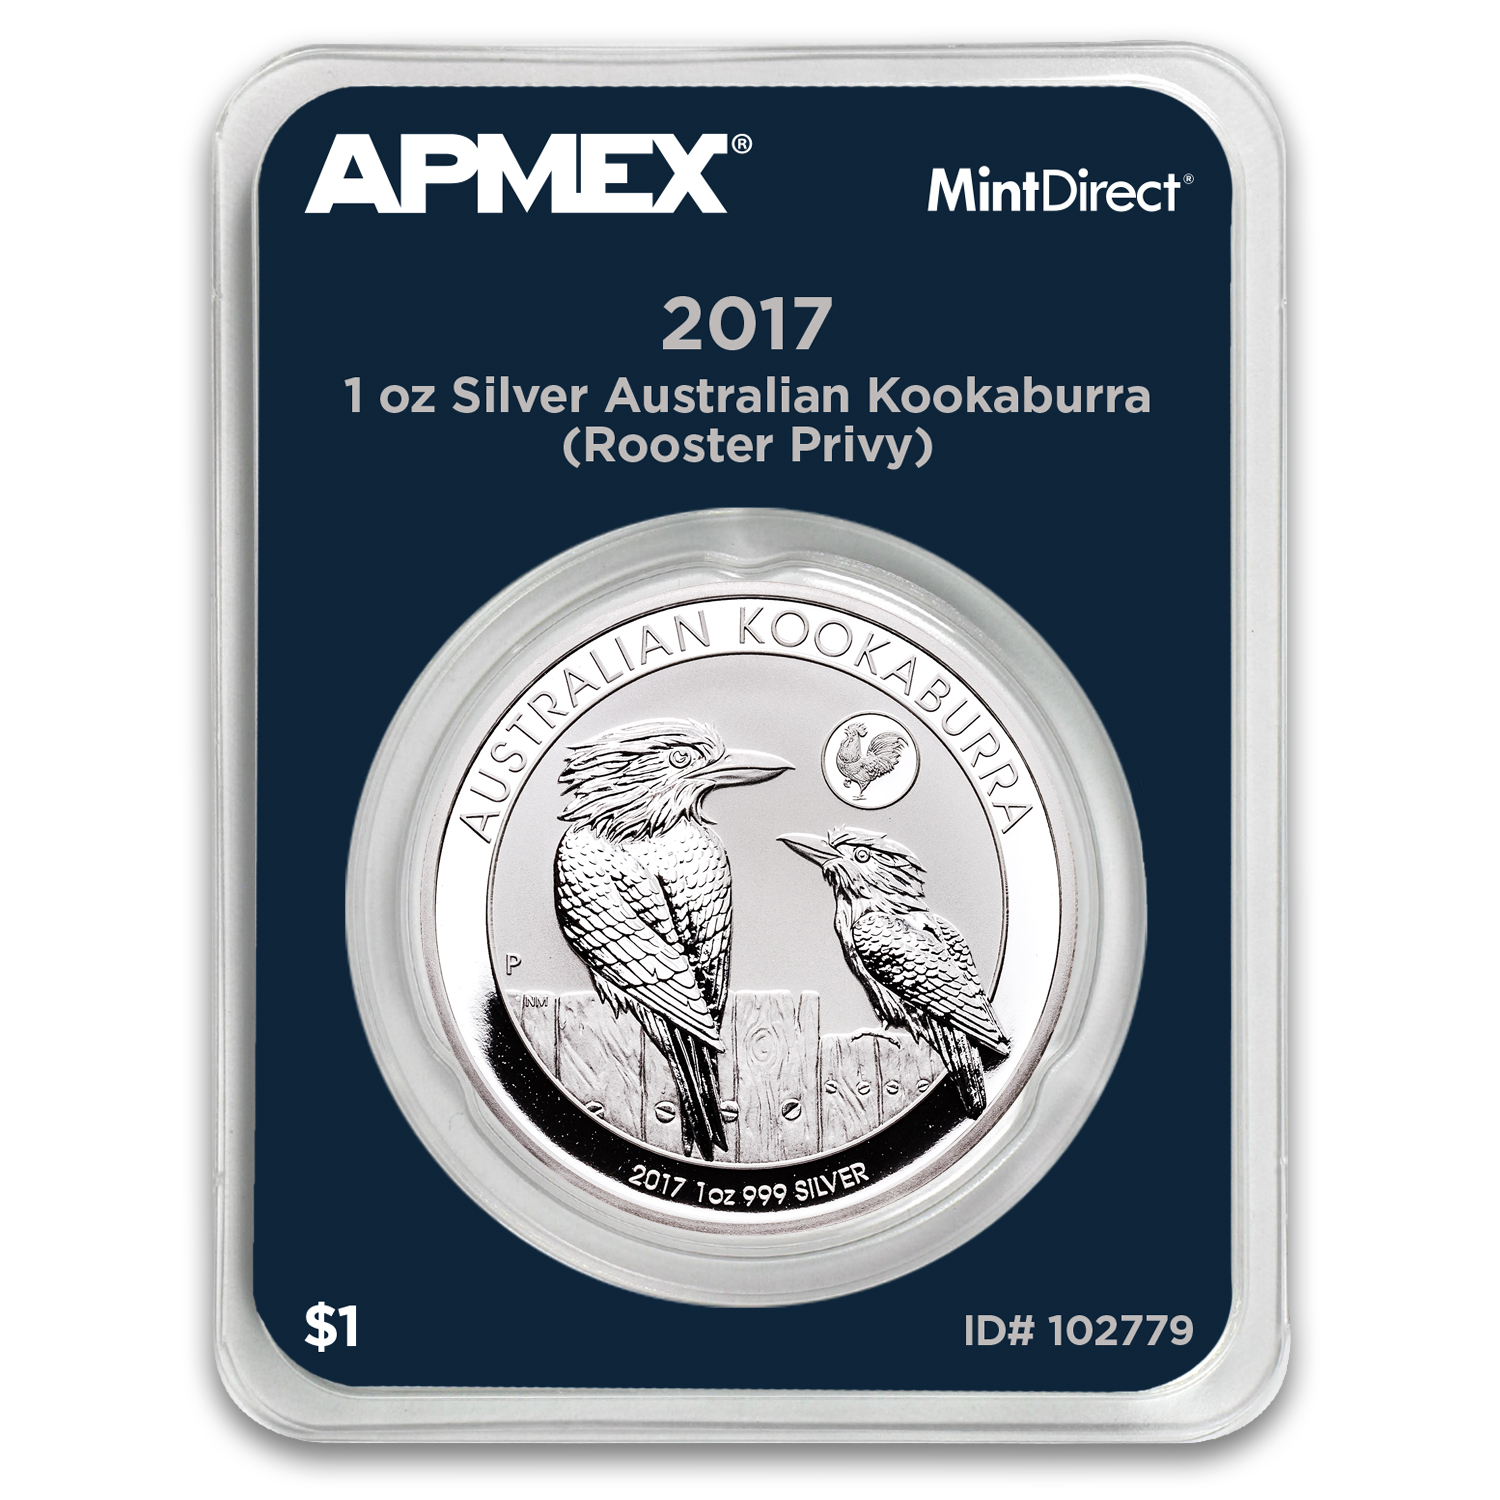 2017 AUS 1 oz Silver Kookaburra Rooster Privy (MintDirect Single)